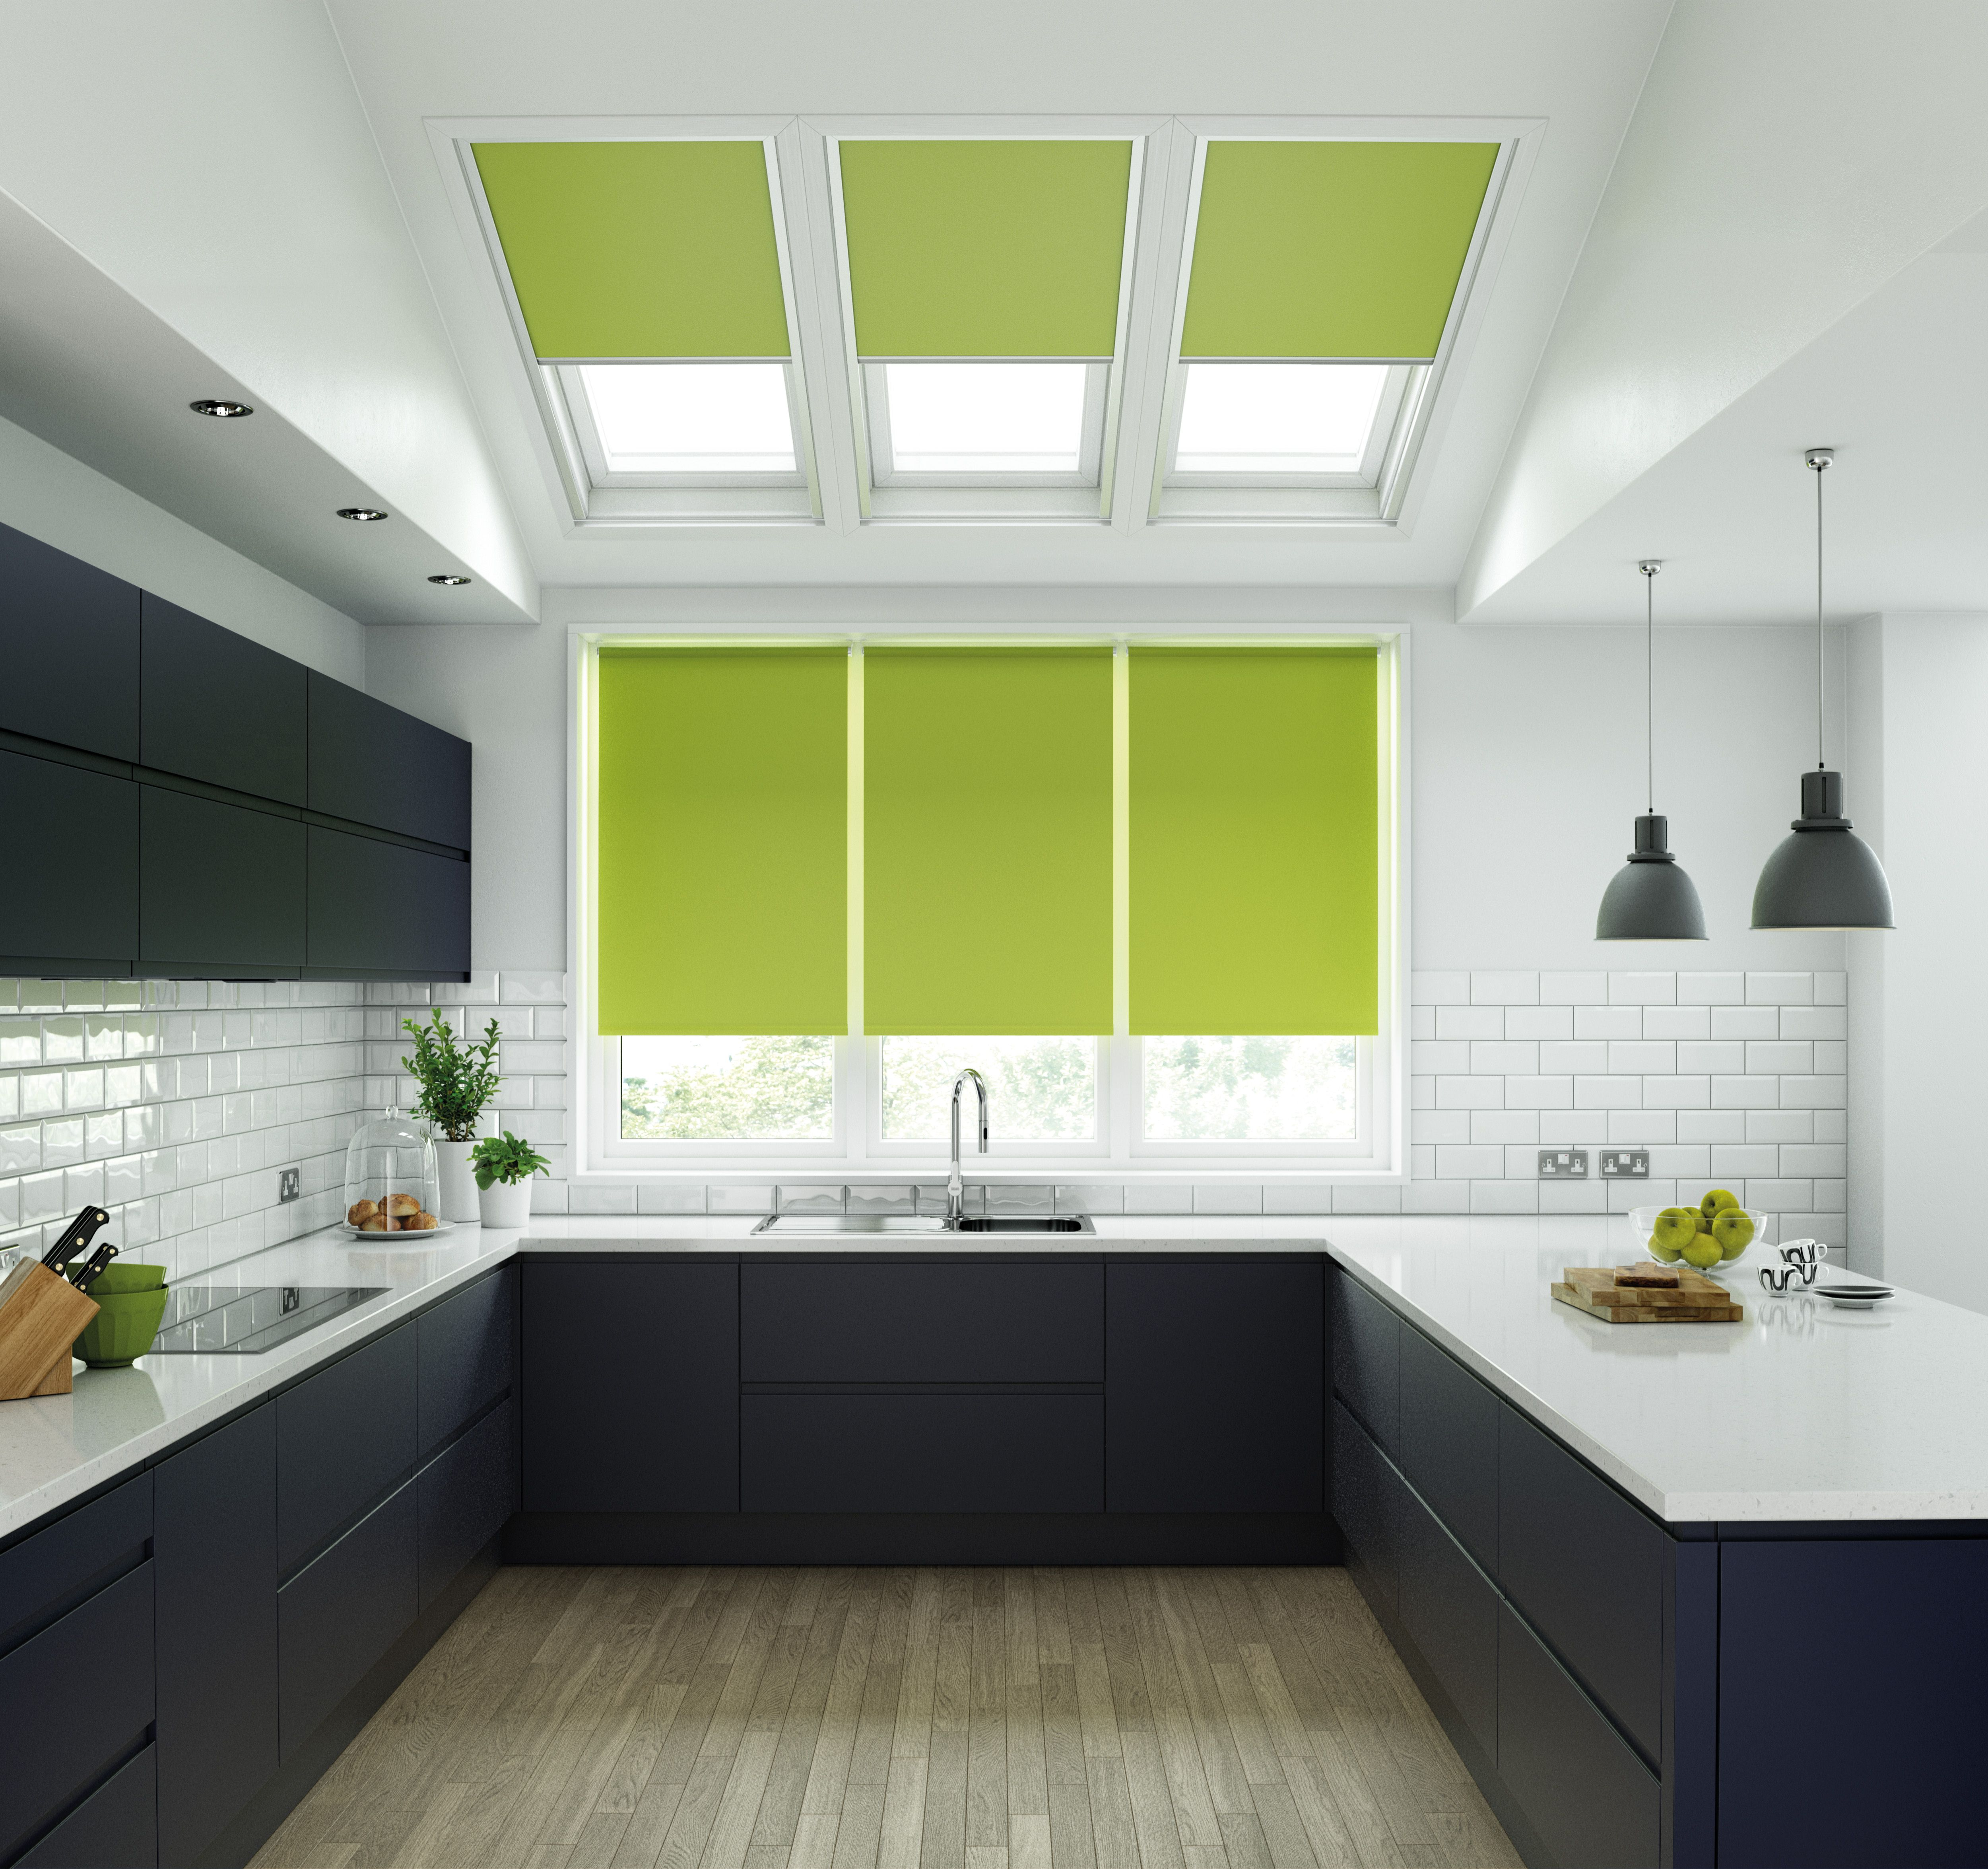 Kitchen Fabric Blinds: Lime Green Roller Blinds In Unilux Fabric Fitted To